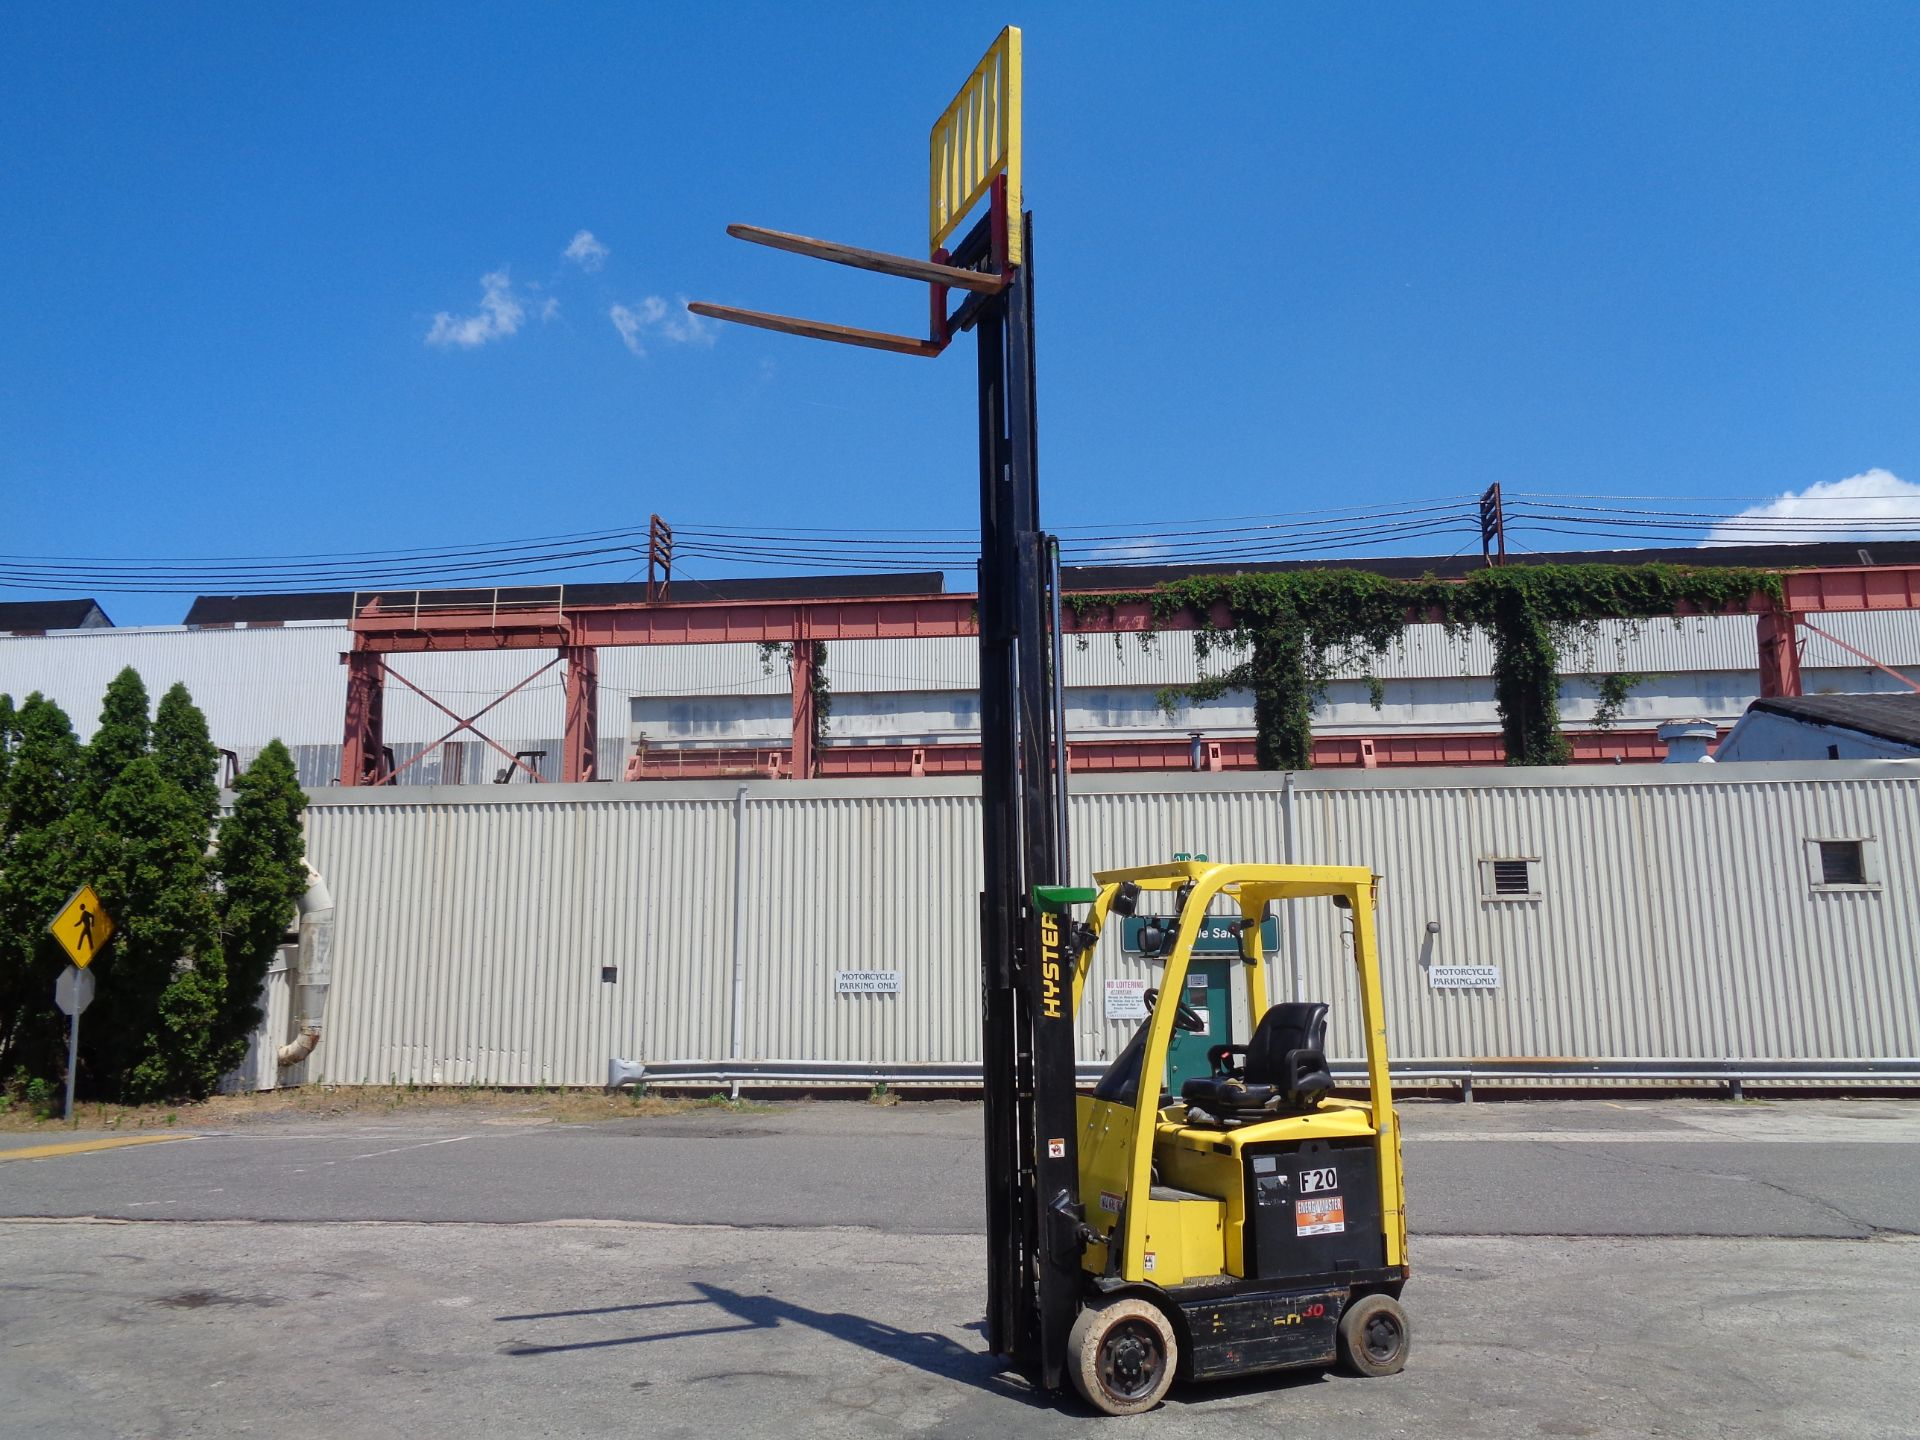 2016 Hyster E30XN 3,000lb Forklift - Image 12 of 18